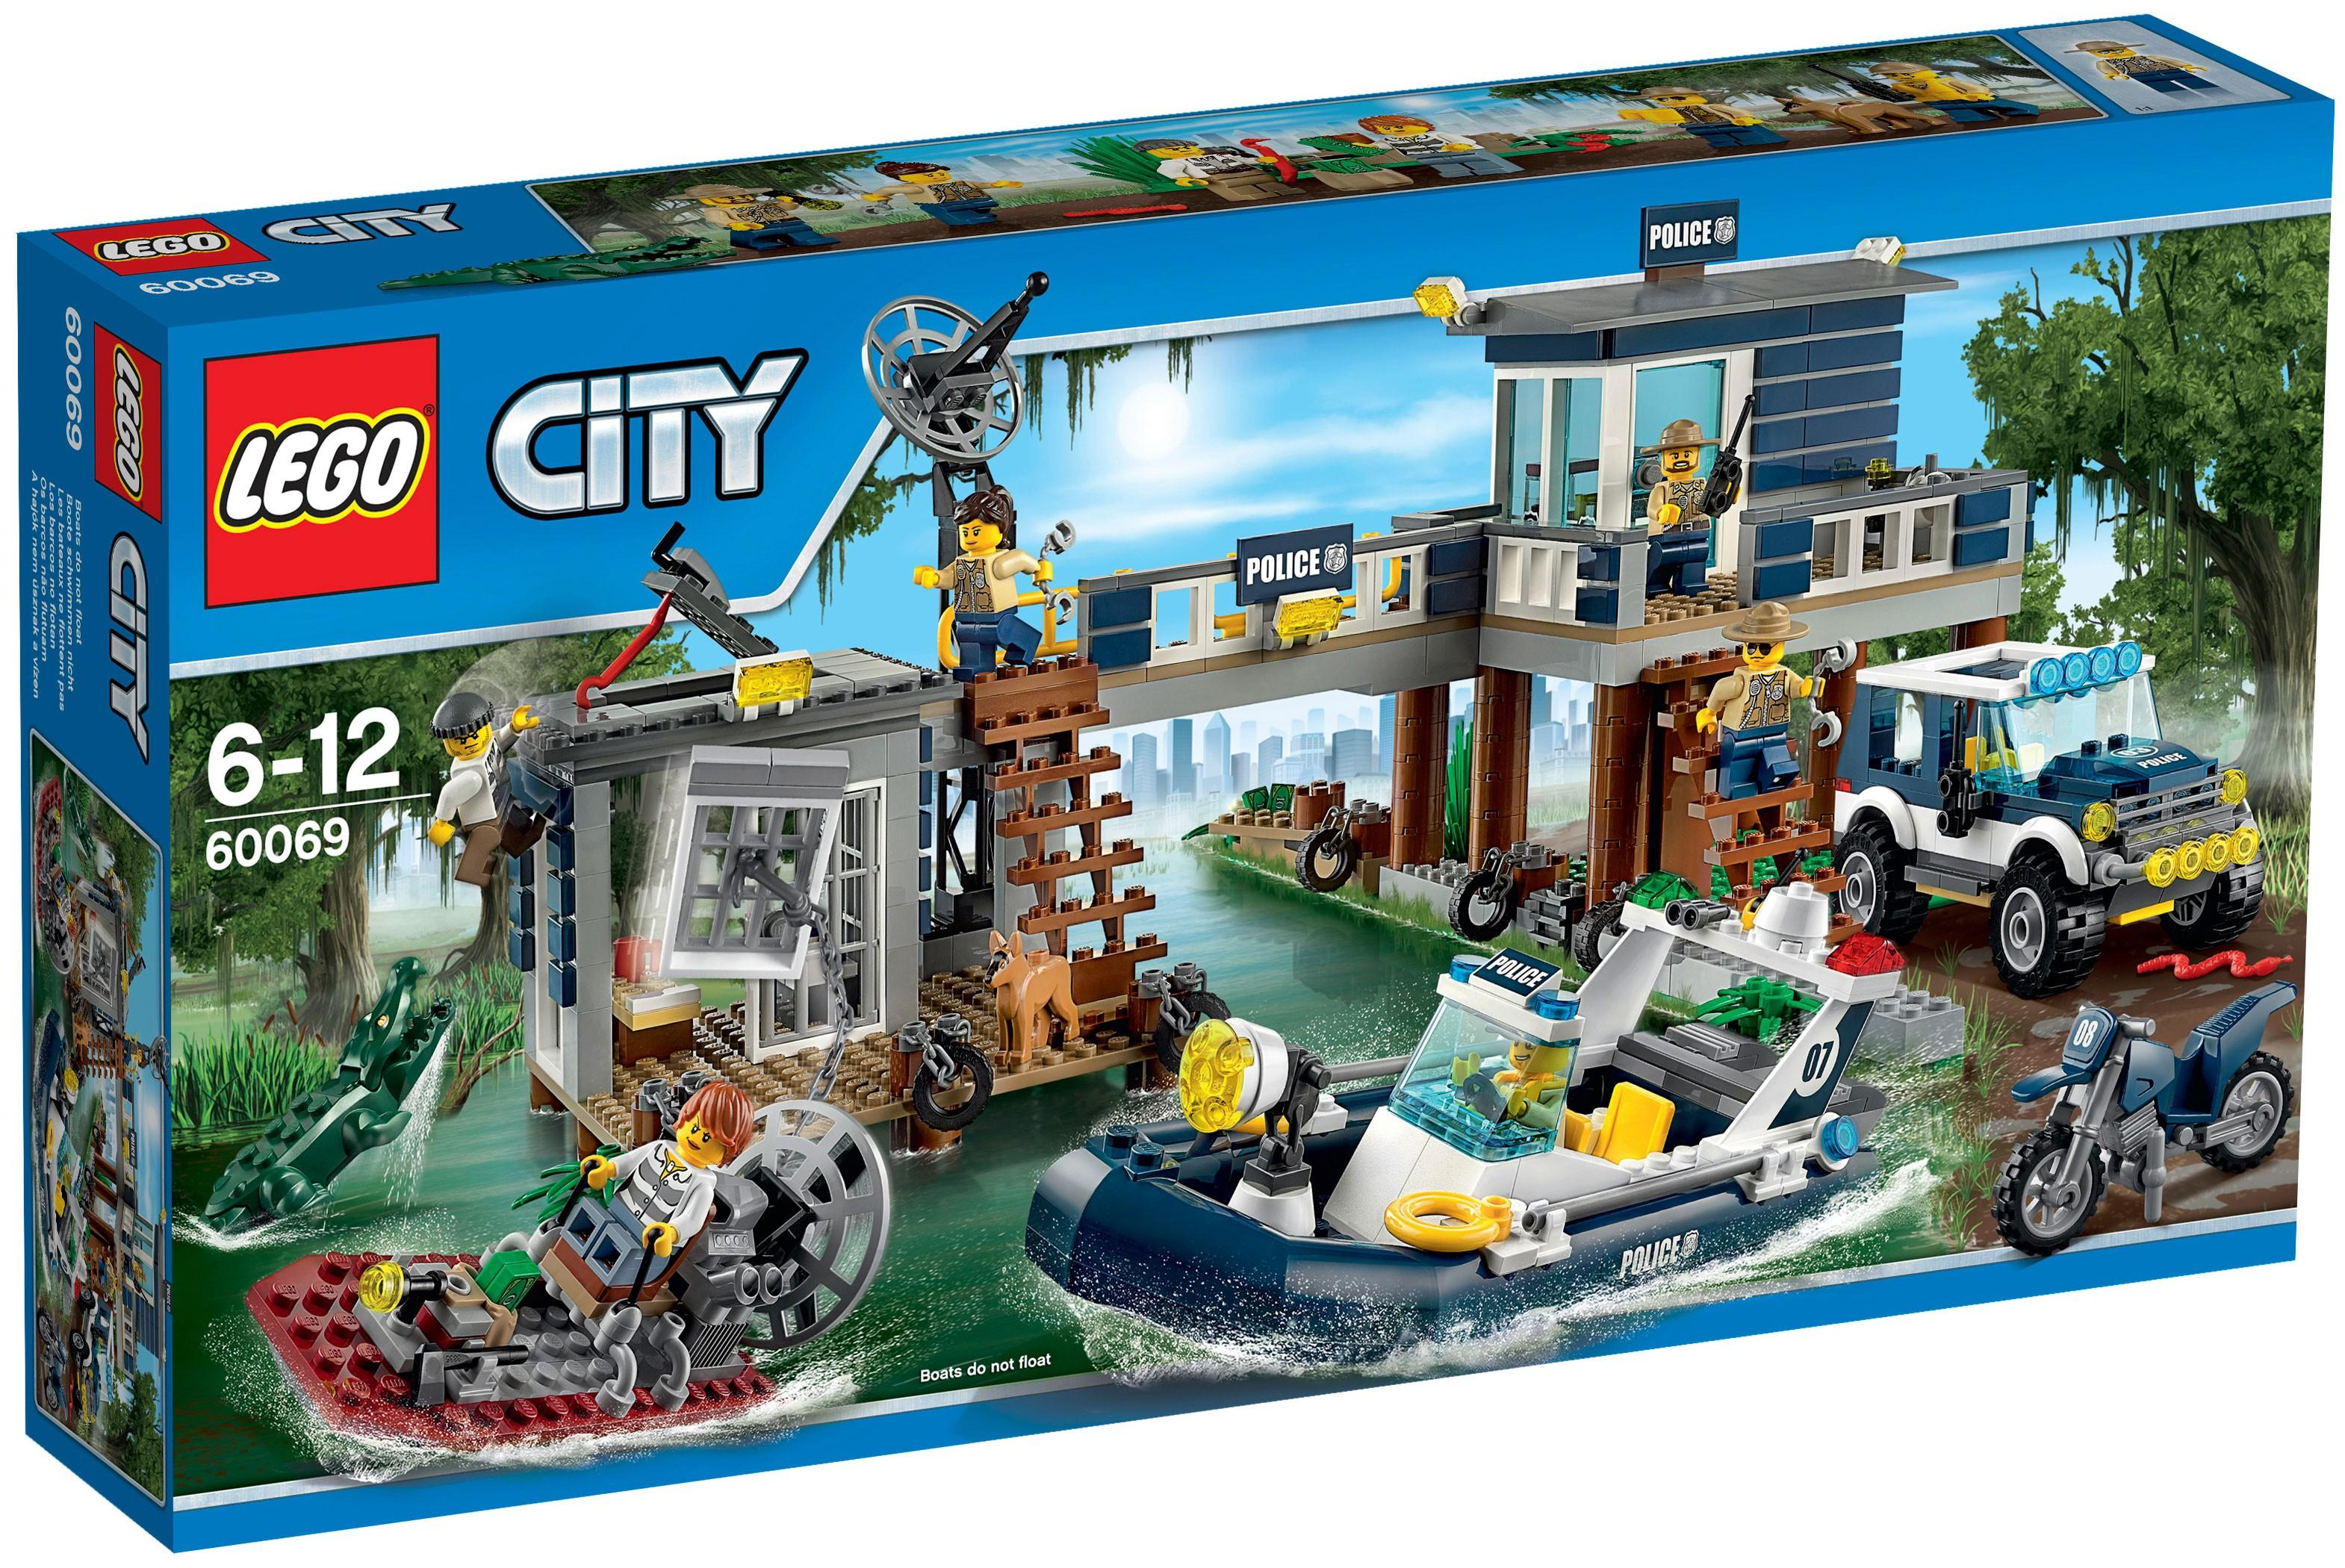 Lego City Swamp Police Station